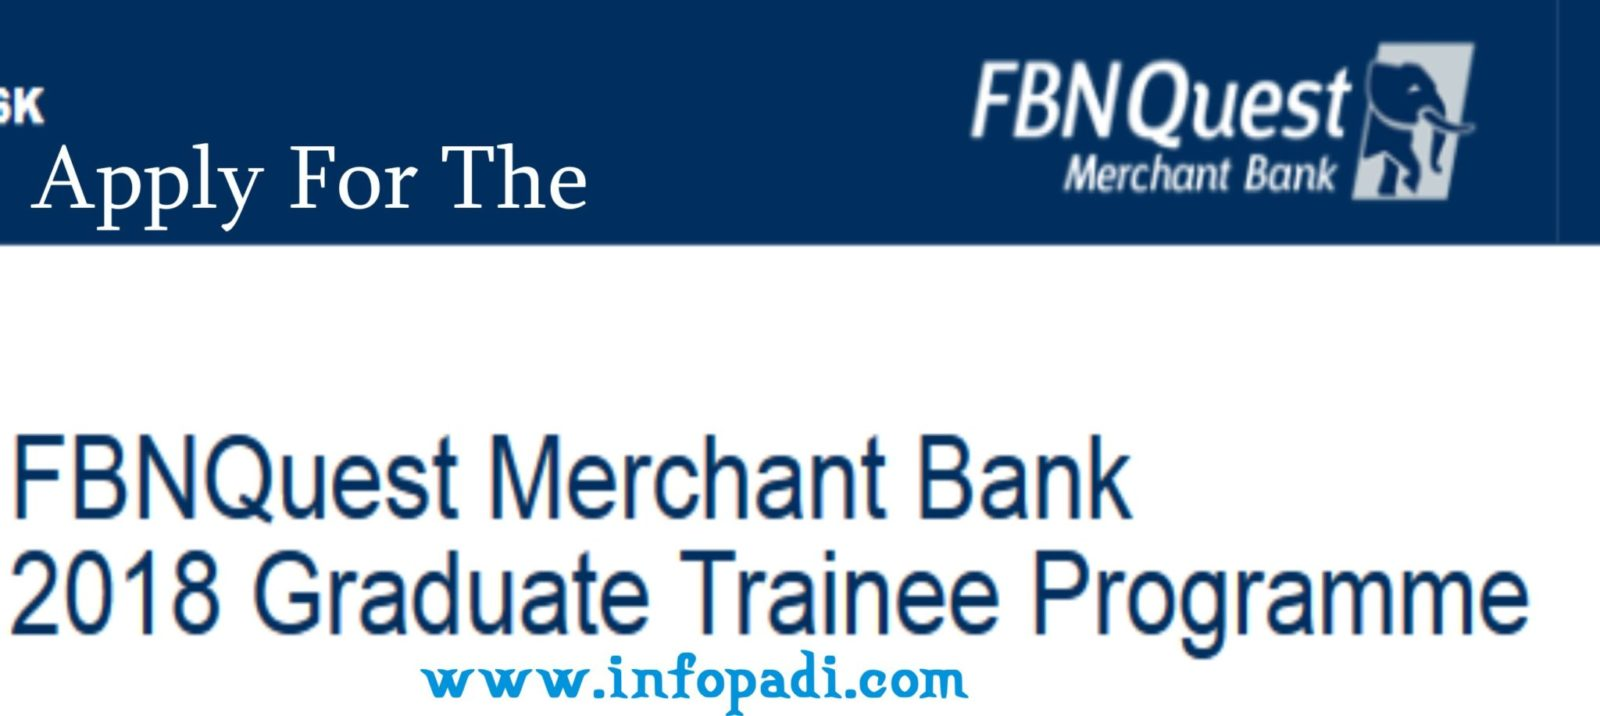 Apply for the First Bank of Nigeria Graduate Trainee Job 2018- Application guidelines and tips